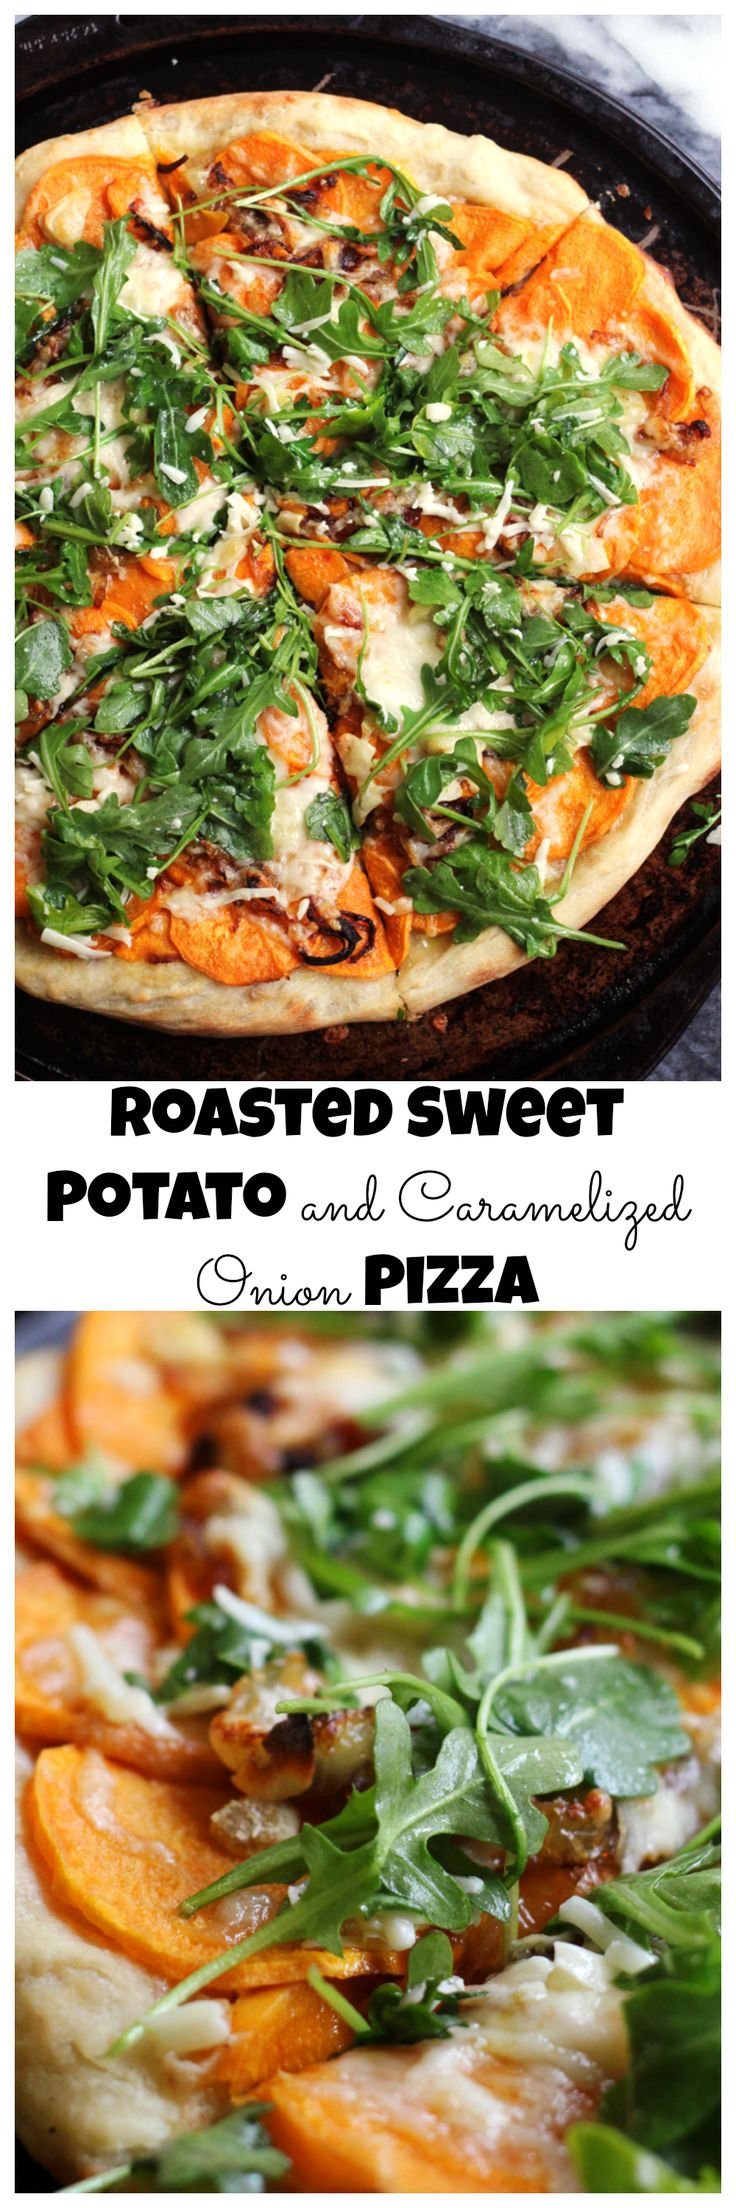 Sweet potatoes and caramelized onions top this one of a kind pizza that gets a dose of fresh flavor from a lemony arugula salad